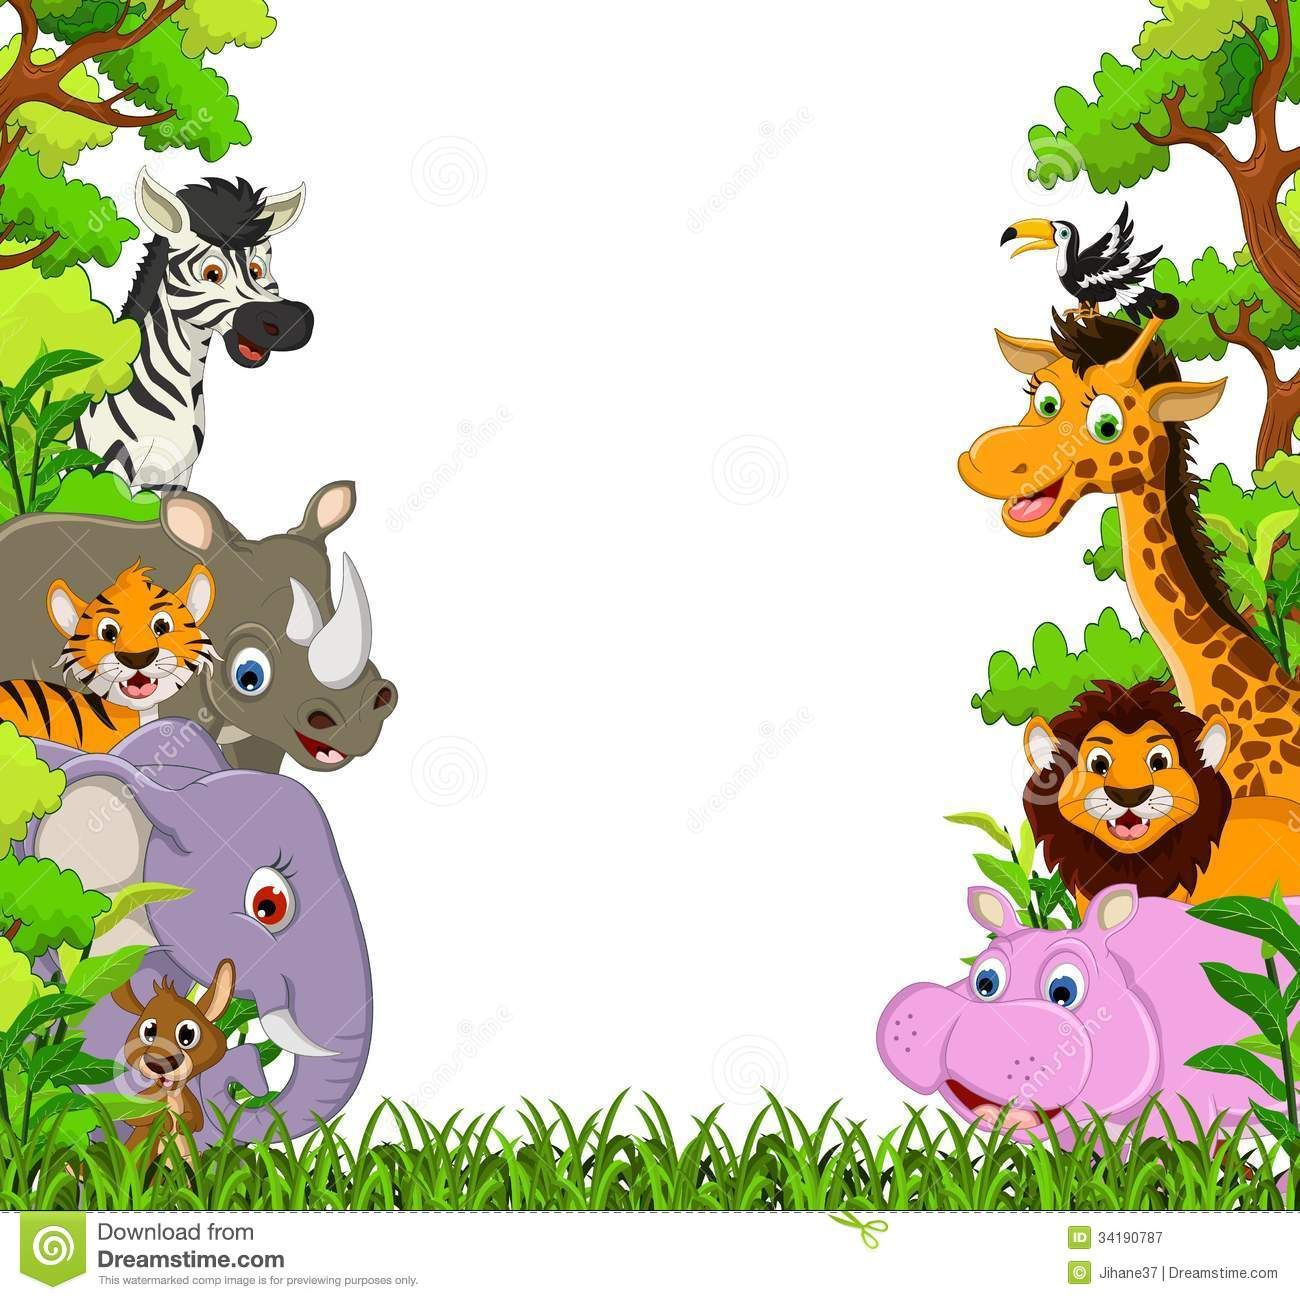 pinterest clipart animals - photo #42